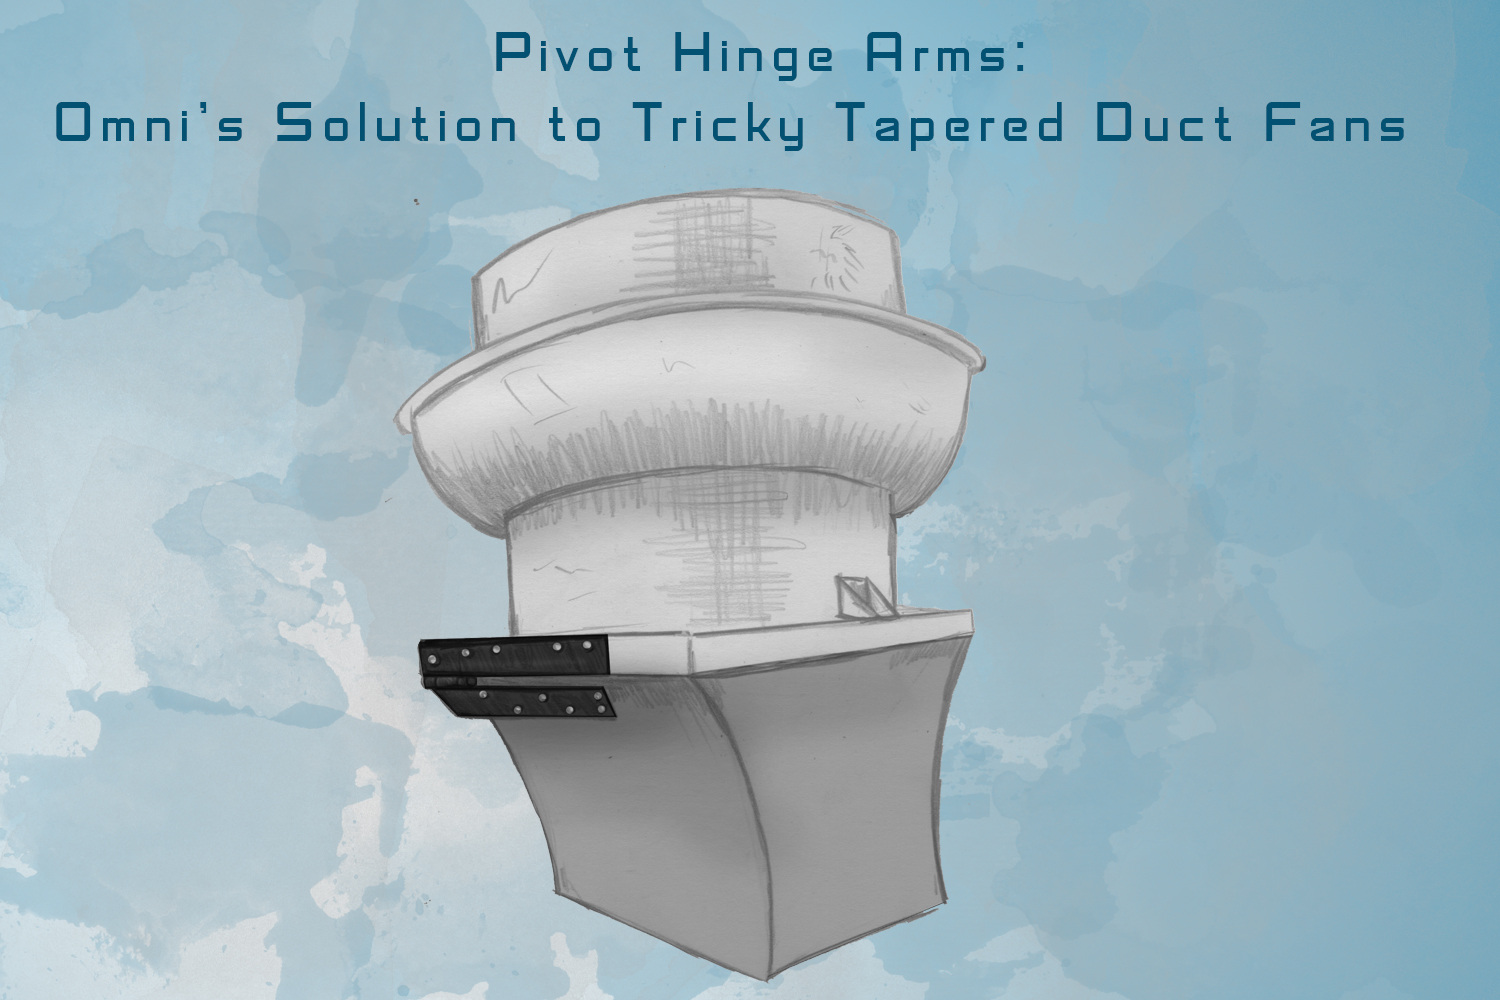 Pivot hinge arms omnis solution to tricky tapered duct fans omni pivot hinge arms omnis solution to tricky tapered duct fans omni containment systems asfbconference2016 Choice Image